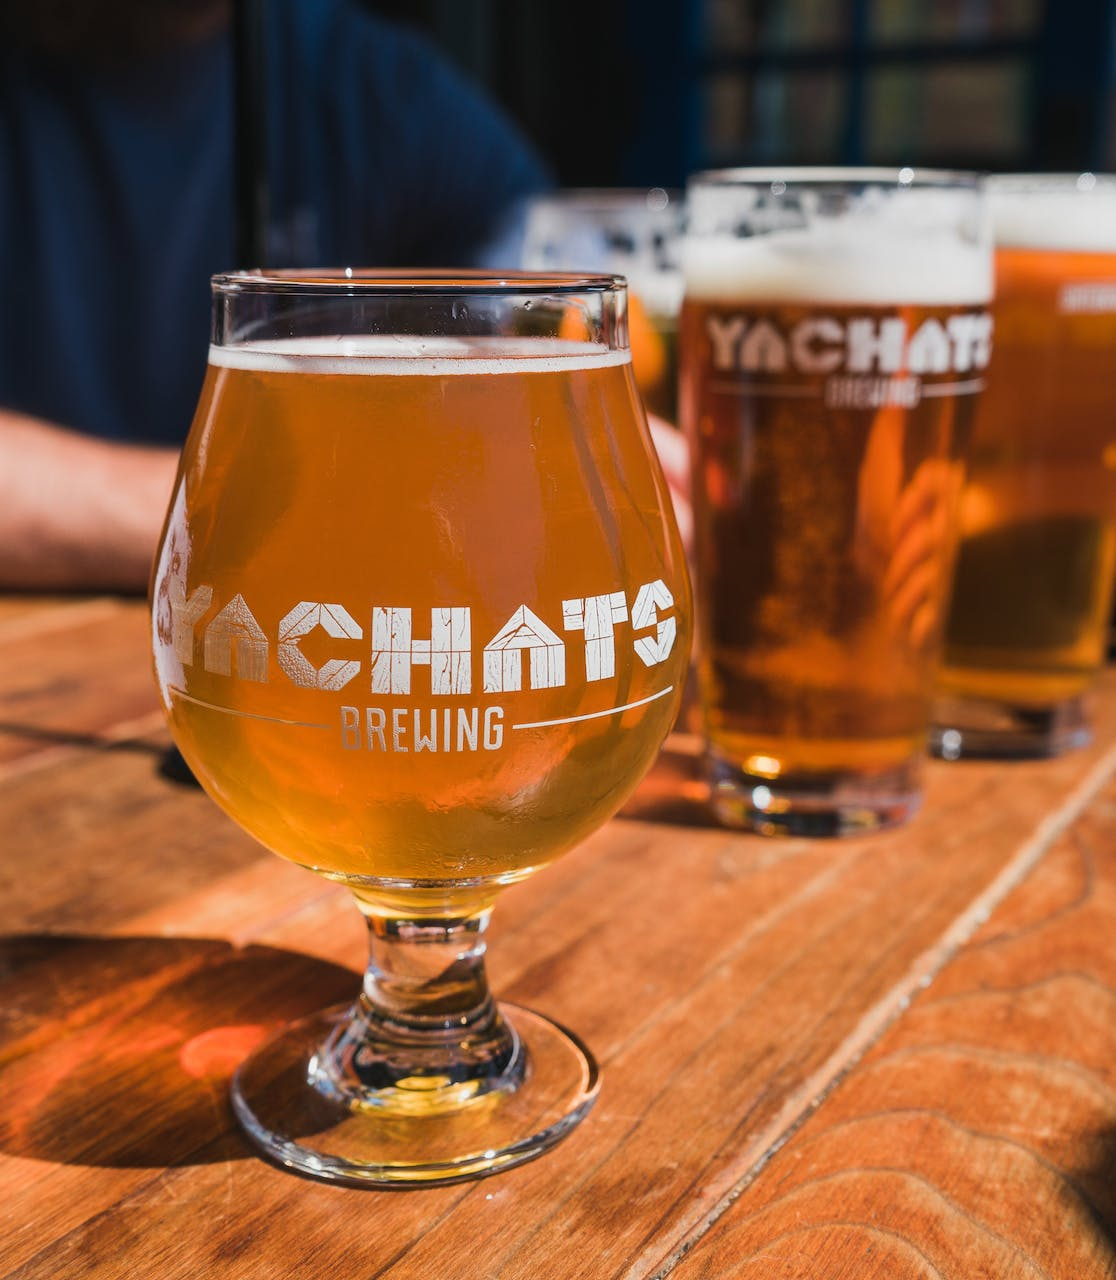 Guest Photo - Yachats Brewing